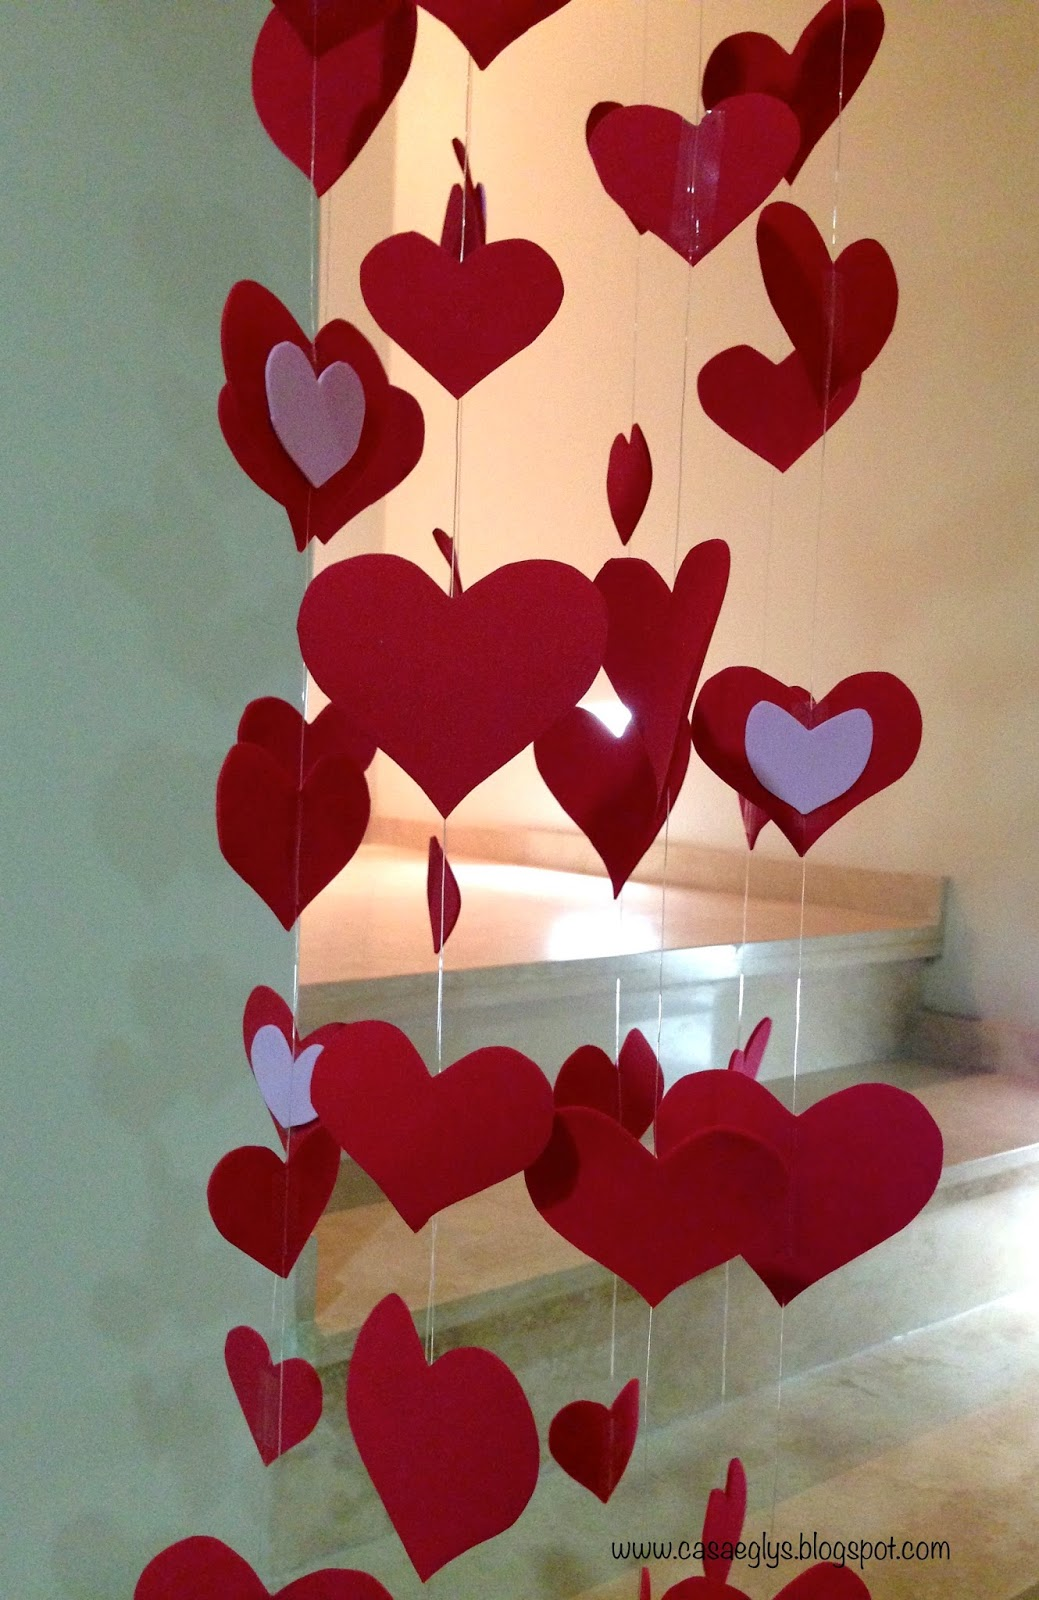 Casa eglys diy m vil de corazones for Decoracion para pared san valentin